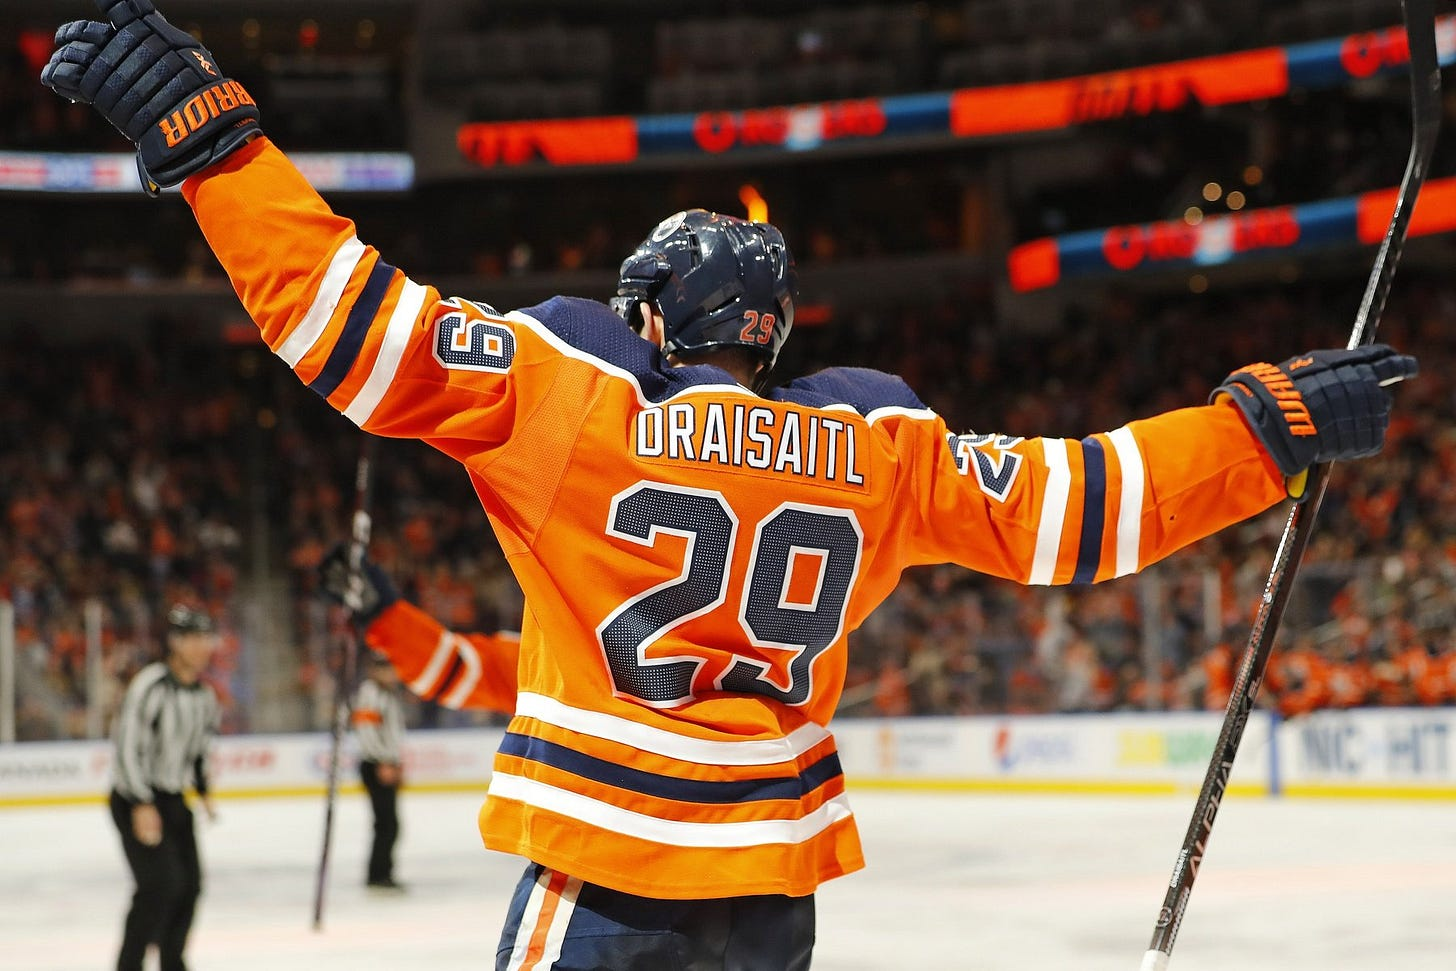 Leon Draisaitl is playing at a level we haven't seen from him before